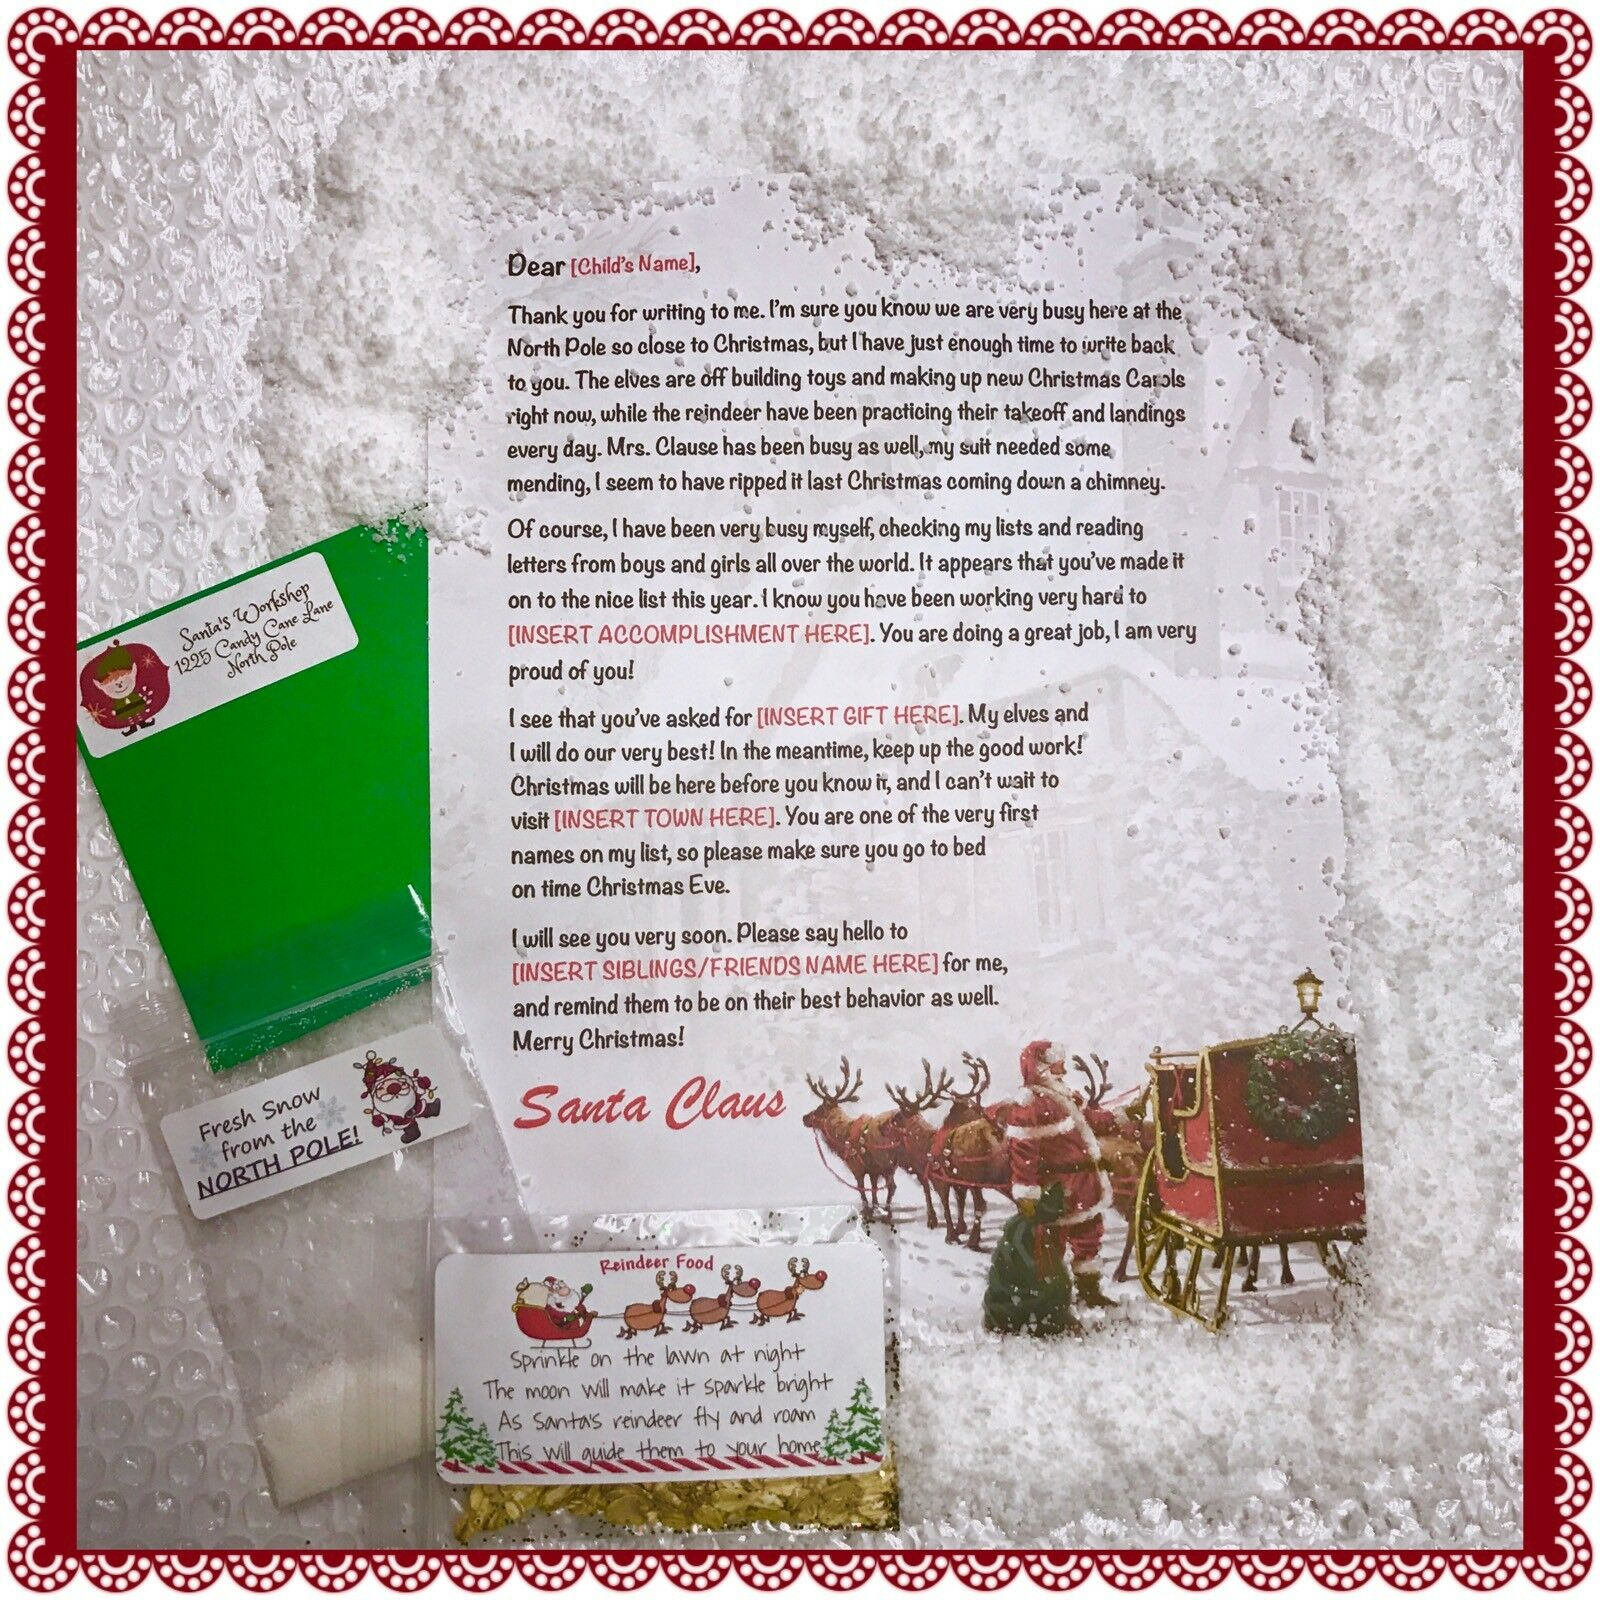 Personalized letter from santa claus wax sealed instant for Personalized letter from santa with reindeer food